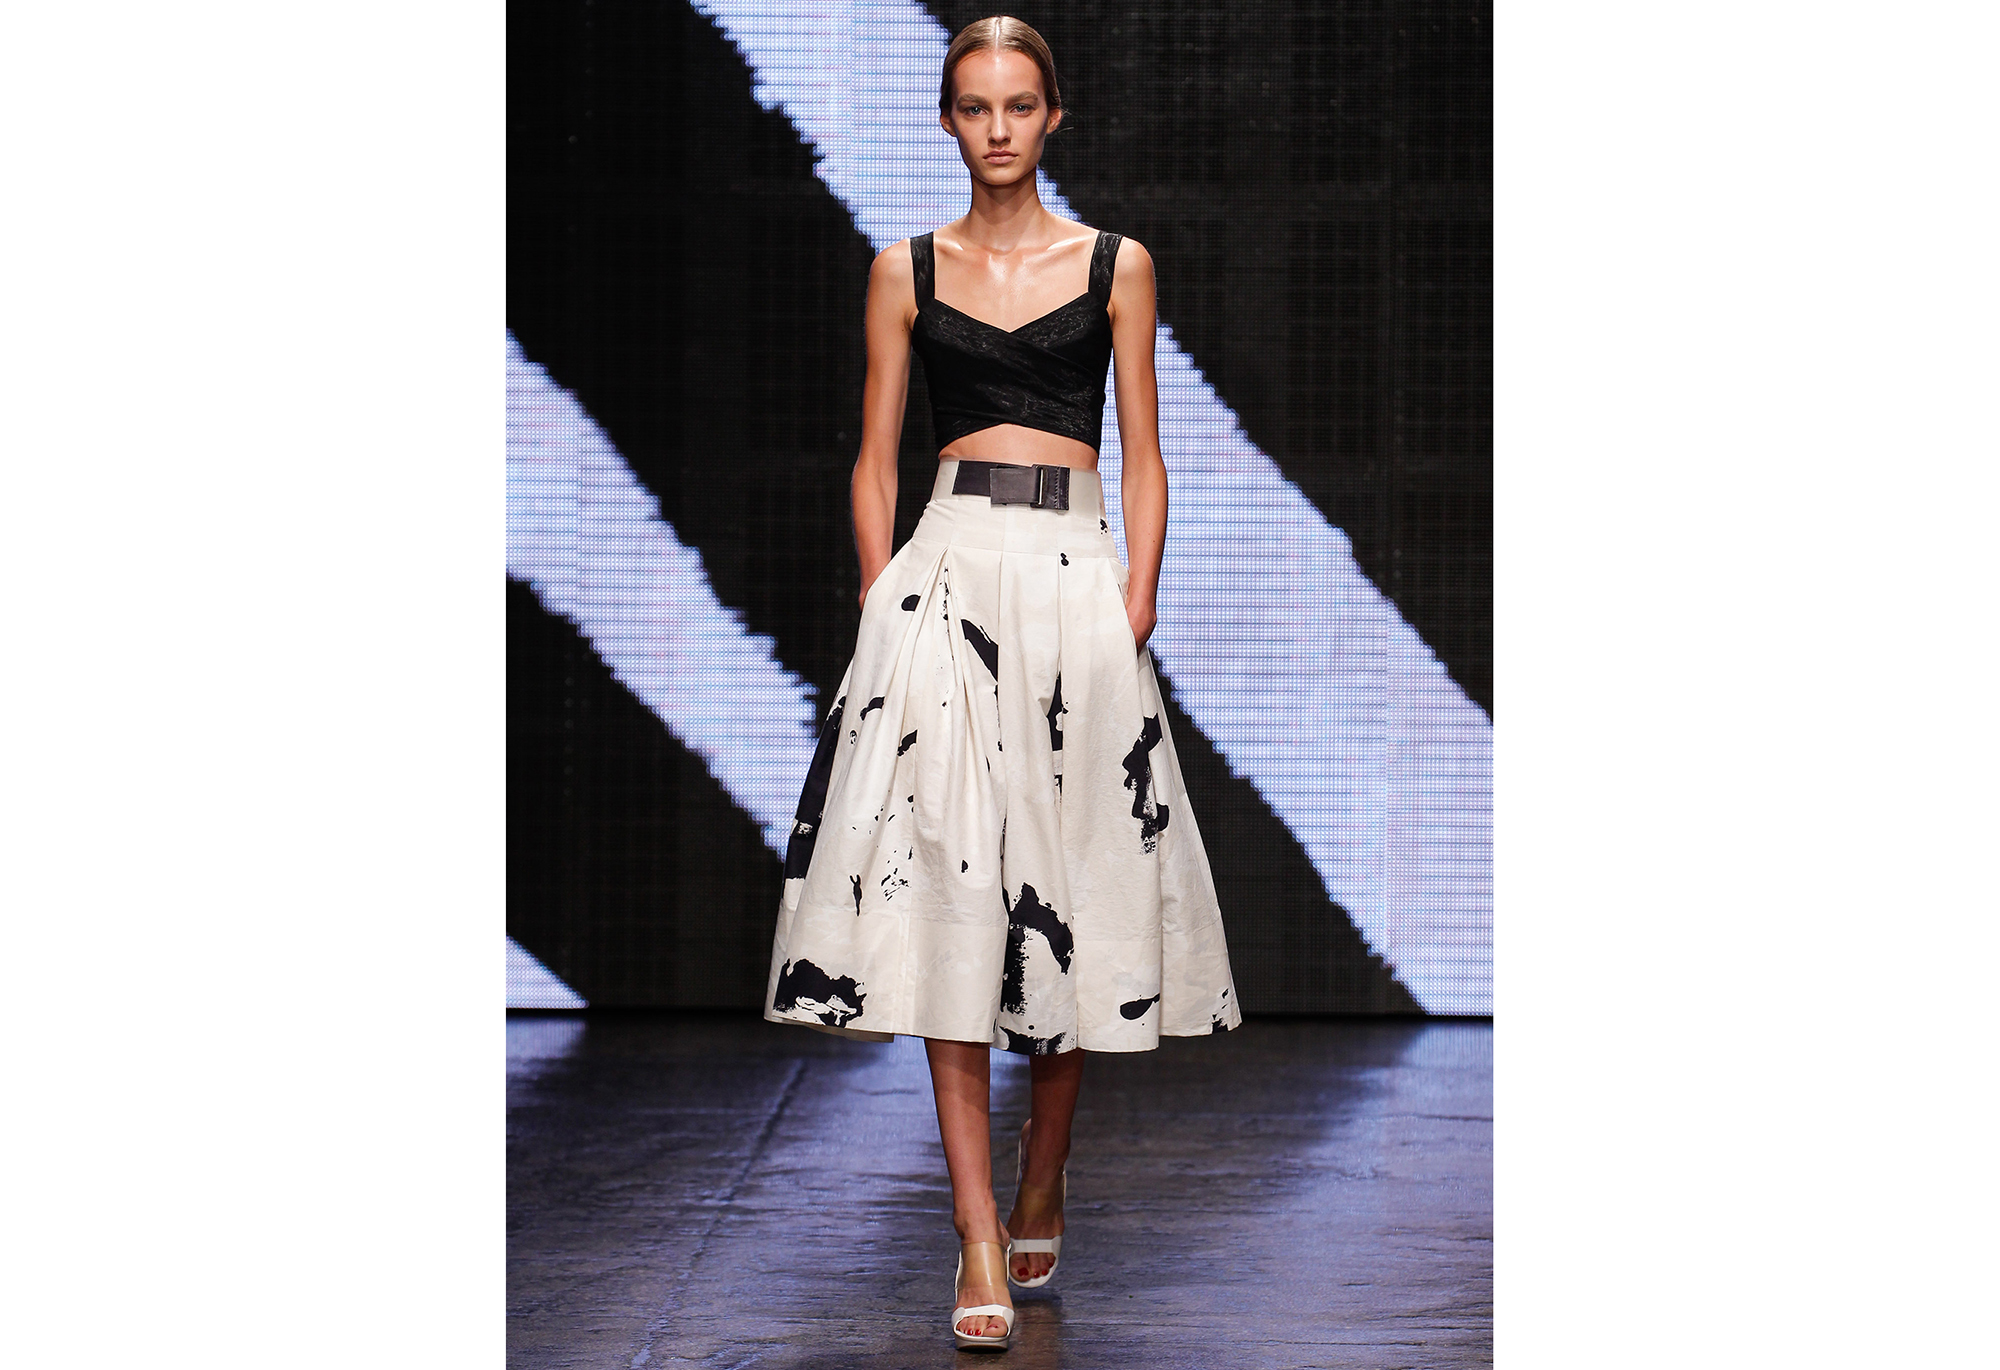 Model wearing cropped black top with full skirt